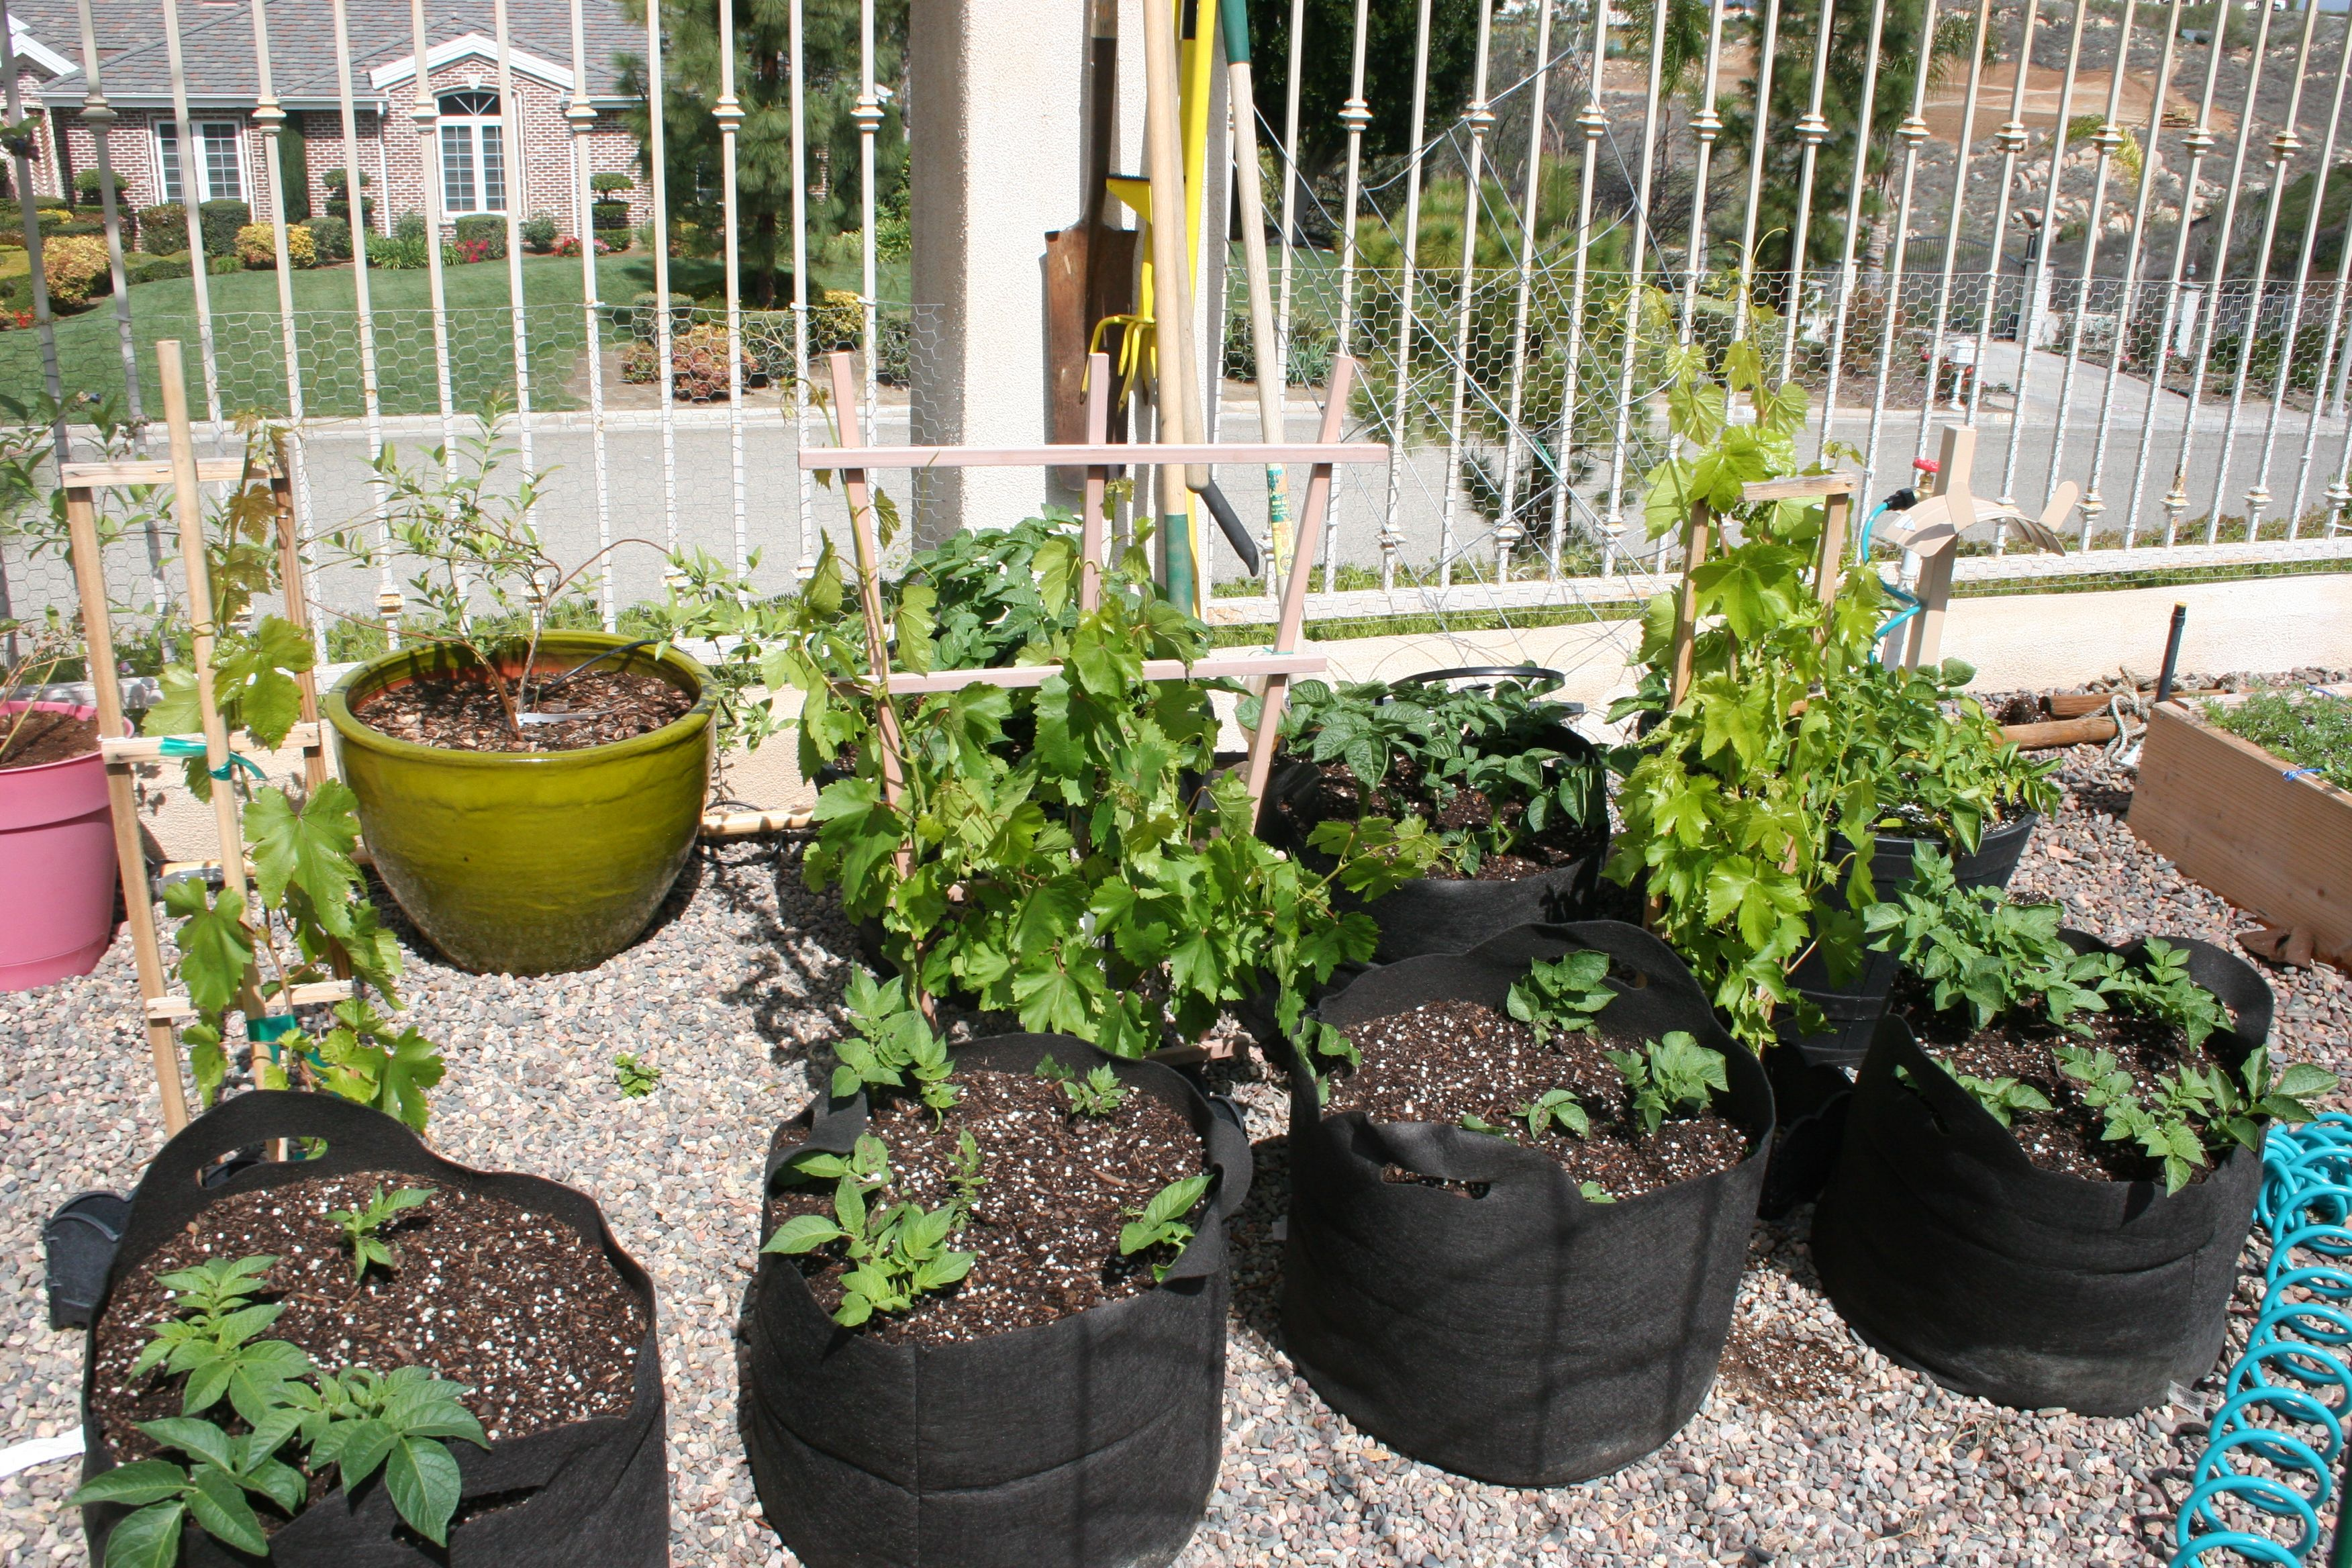 The black bags are filled with potatoes, 3 table grape vines and blueberries in the pots